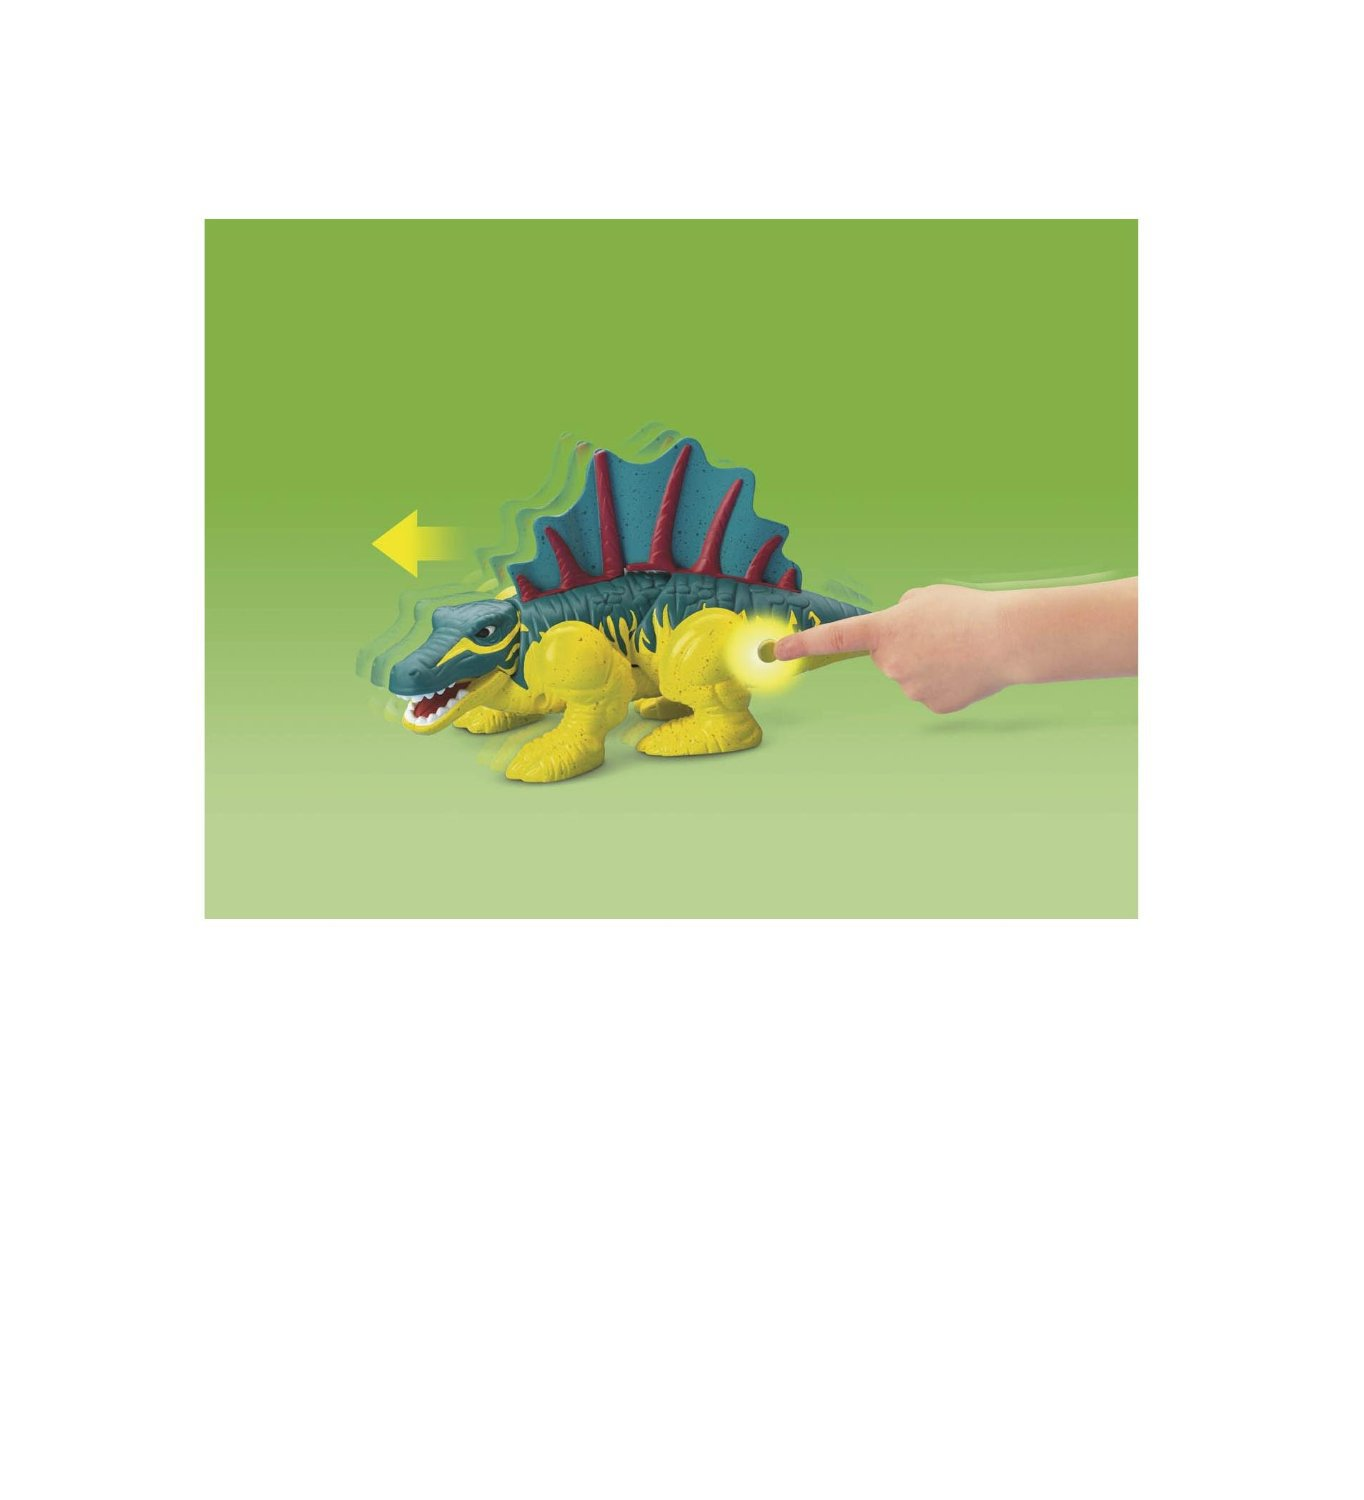 Fisher-Price Imaginext Spiny the Dimetrodon dinosuar